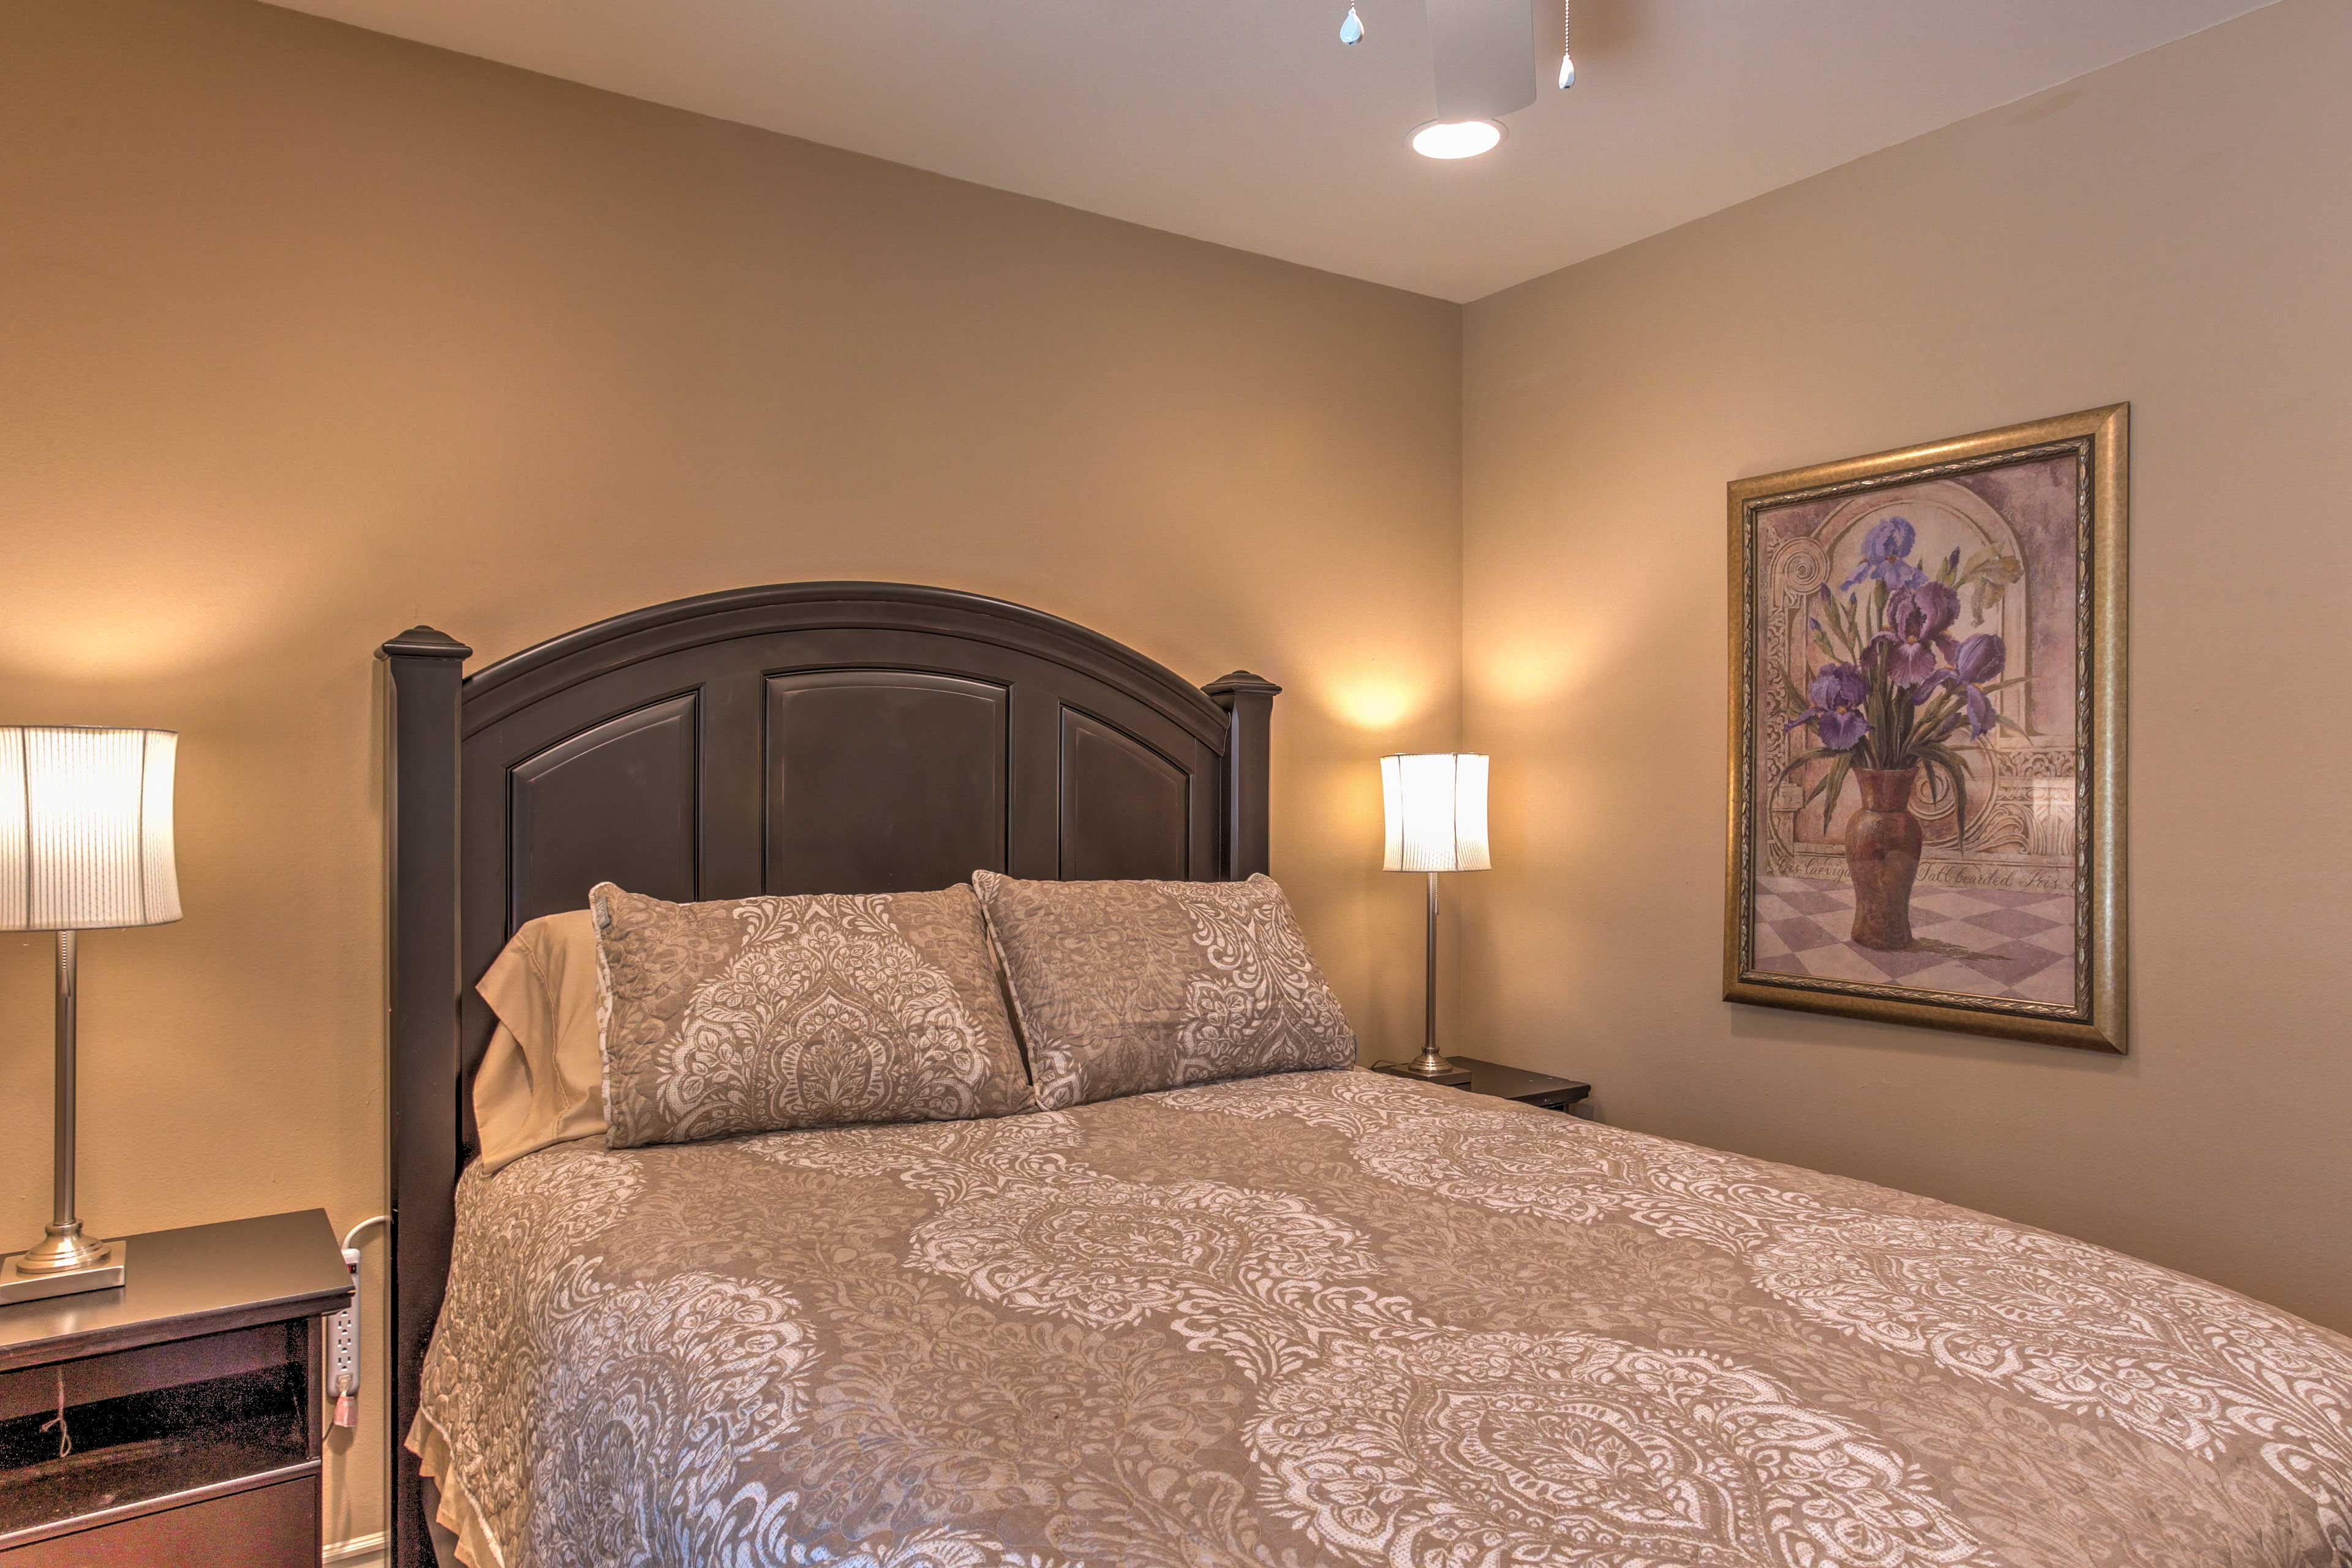 Sleep tight in this queen bed.